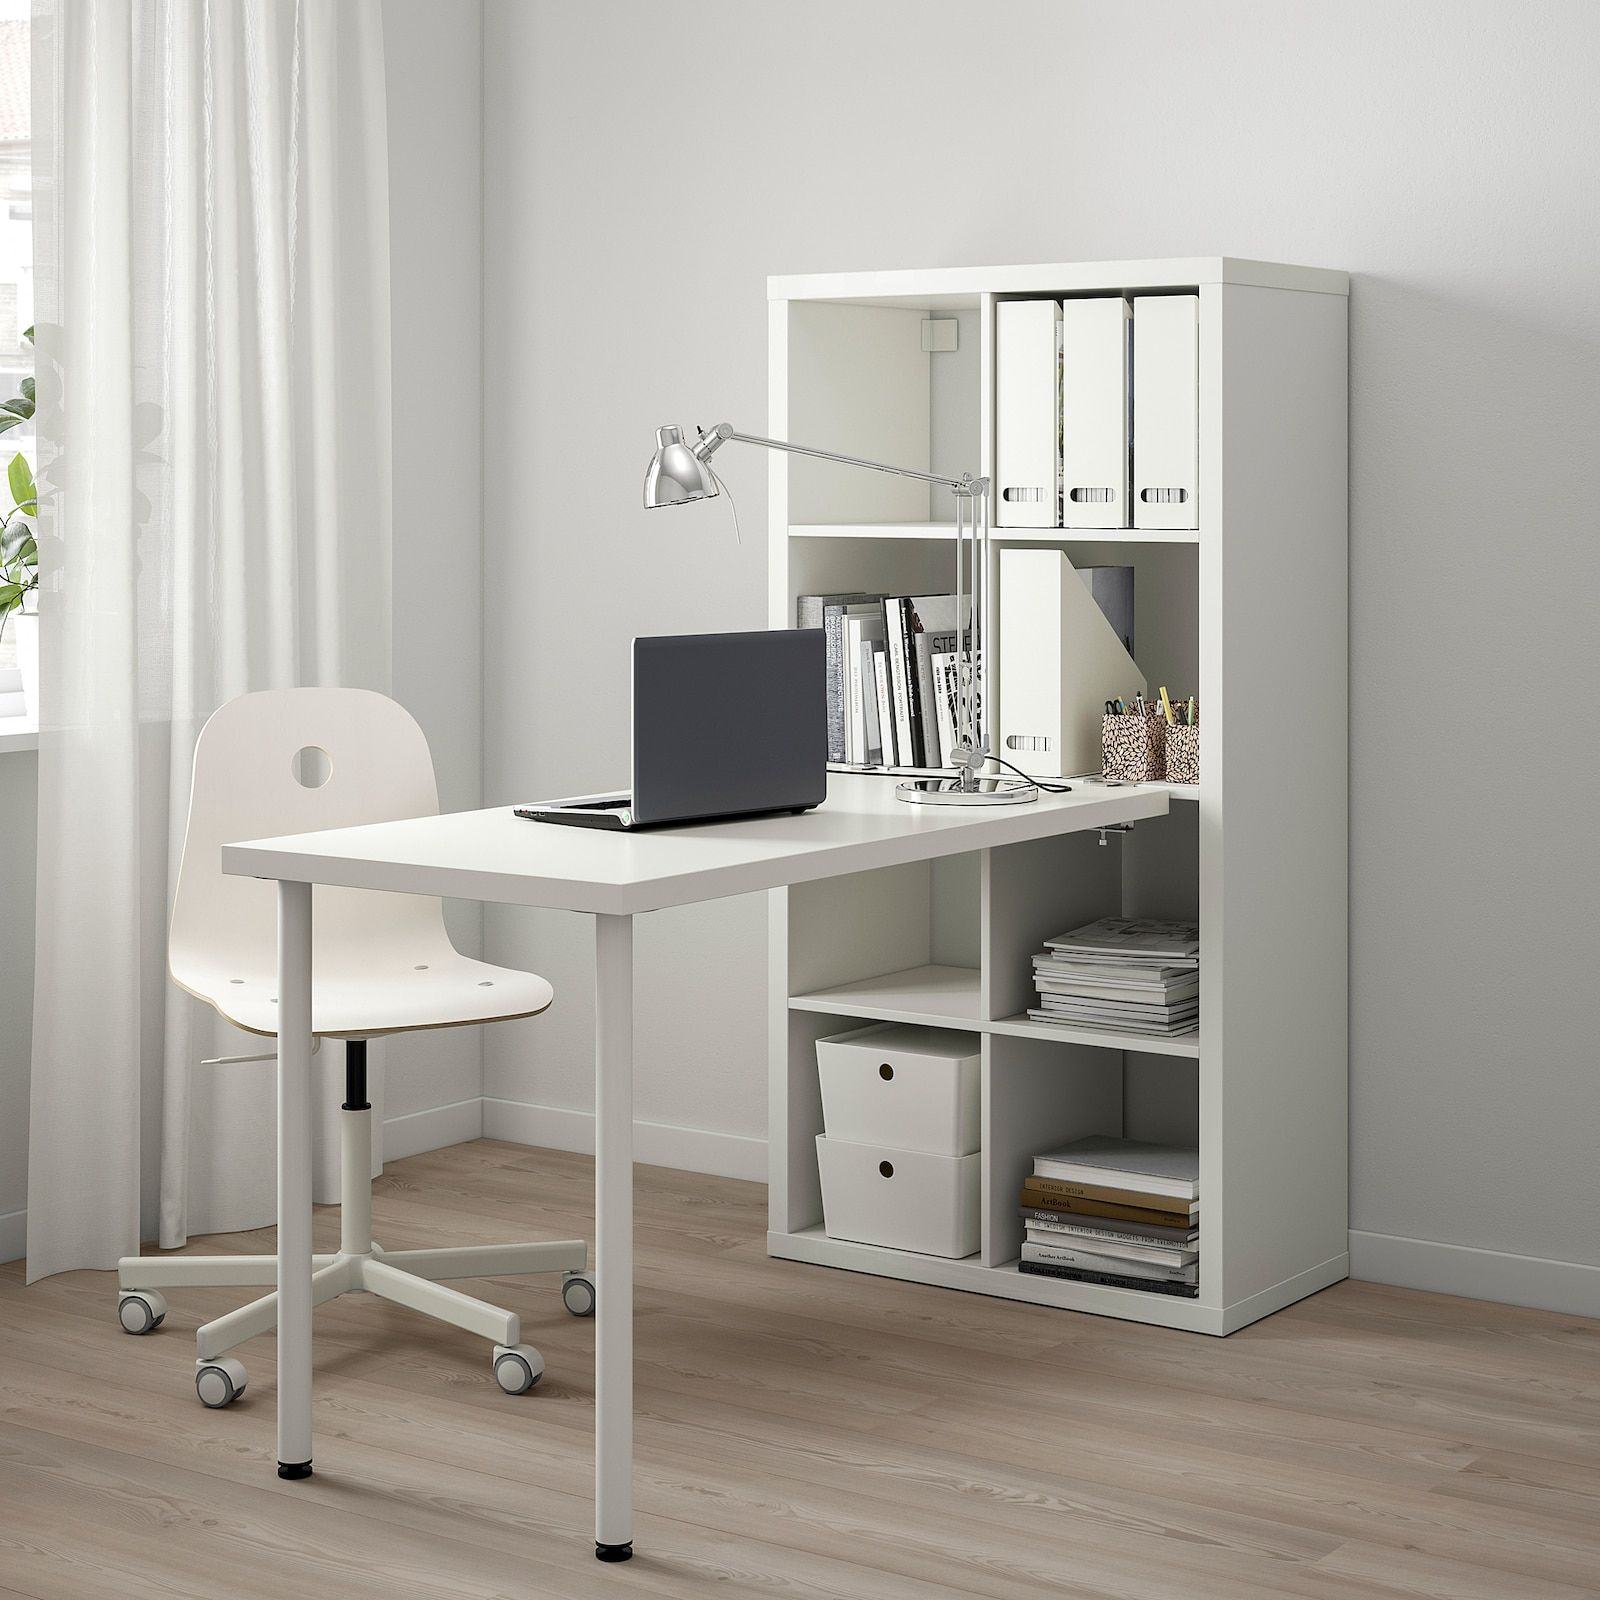 Tischbeine An Platte Befestigen Pin On Cheap Office Furniture